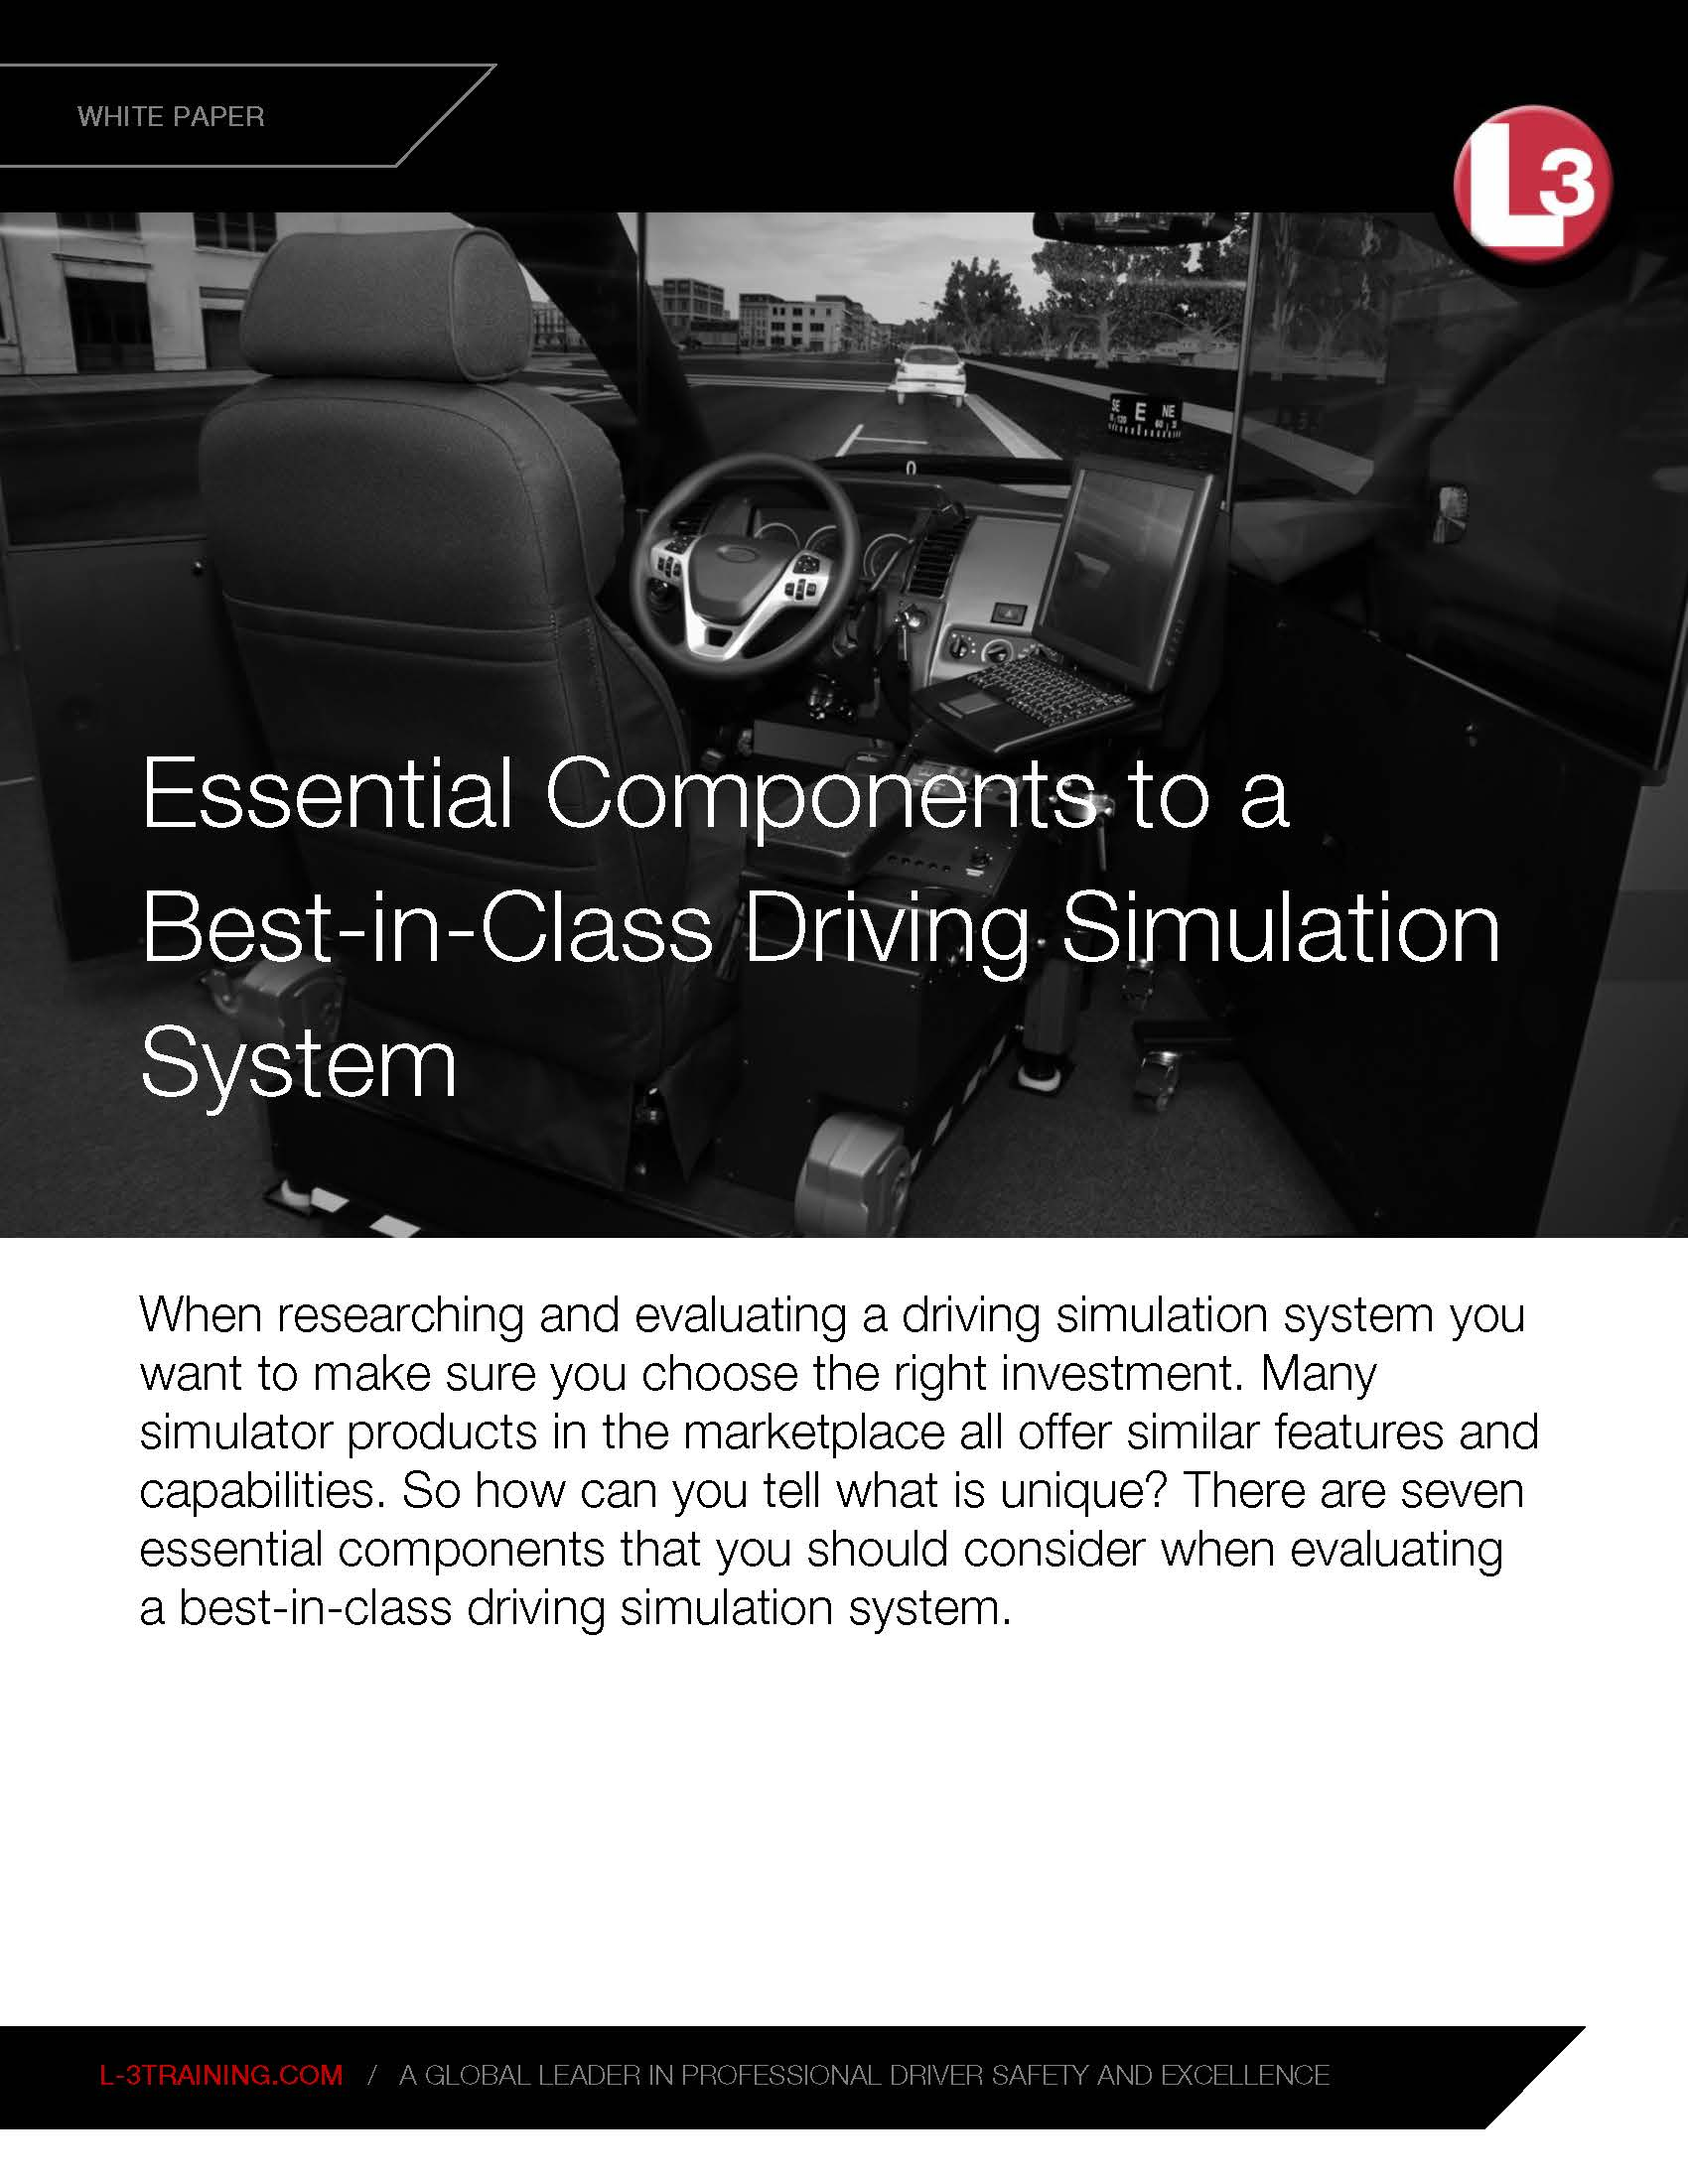 Essential Components of Driving Simulation System